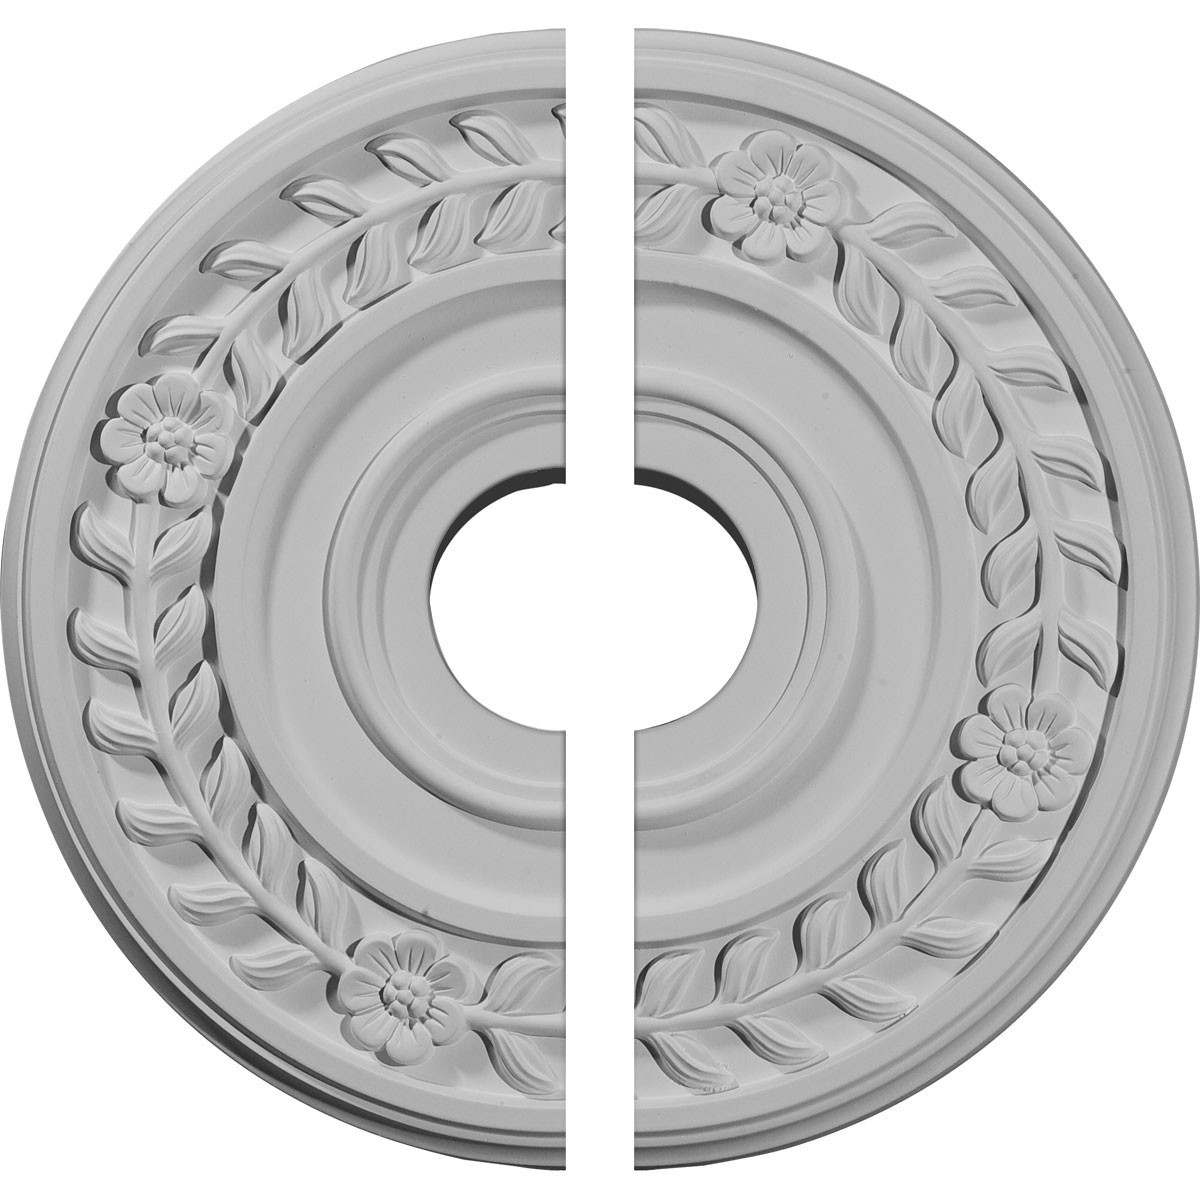 "EM-CM16WR2 - 16 1/4""OD x 3 5/8""ID x 1""P Wreath Ceiling Medallion, Two Piece (Fits Canopies up to 5 1/2"")"